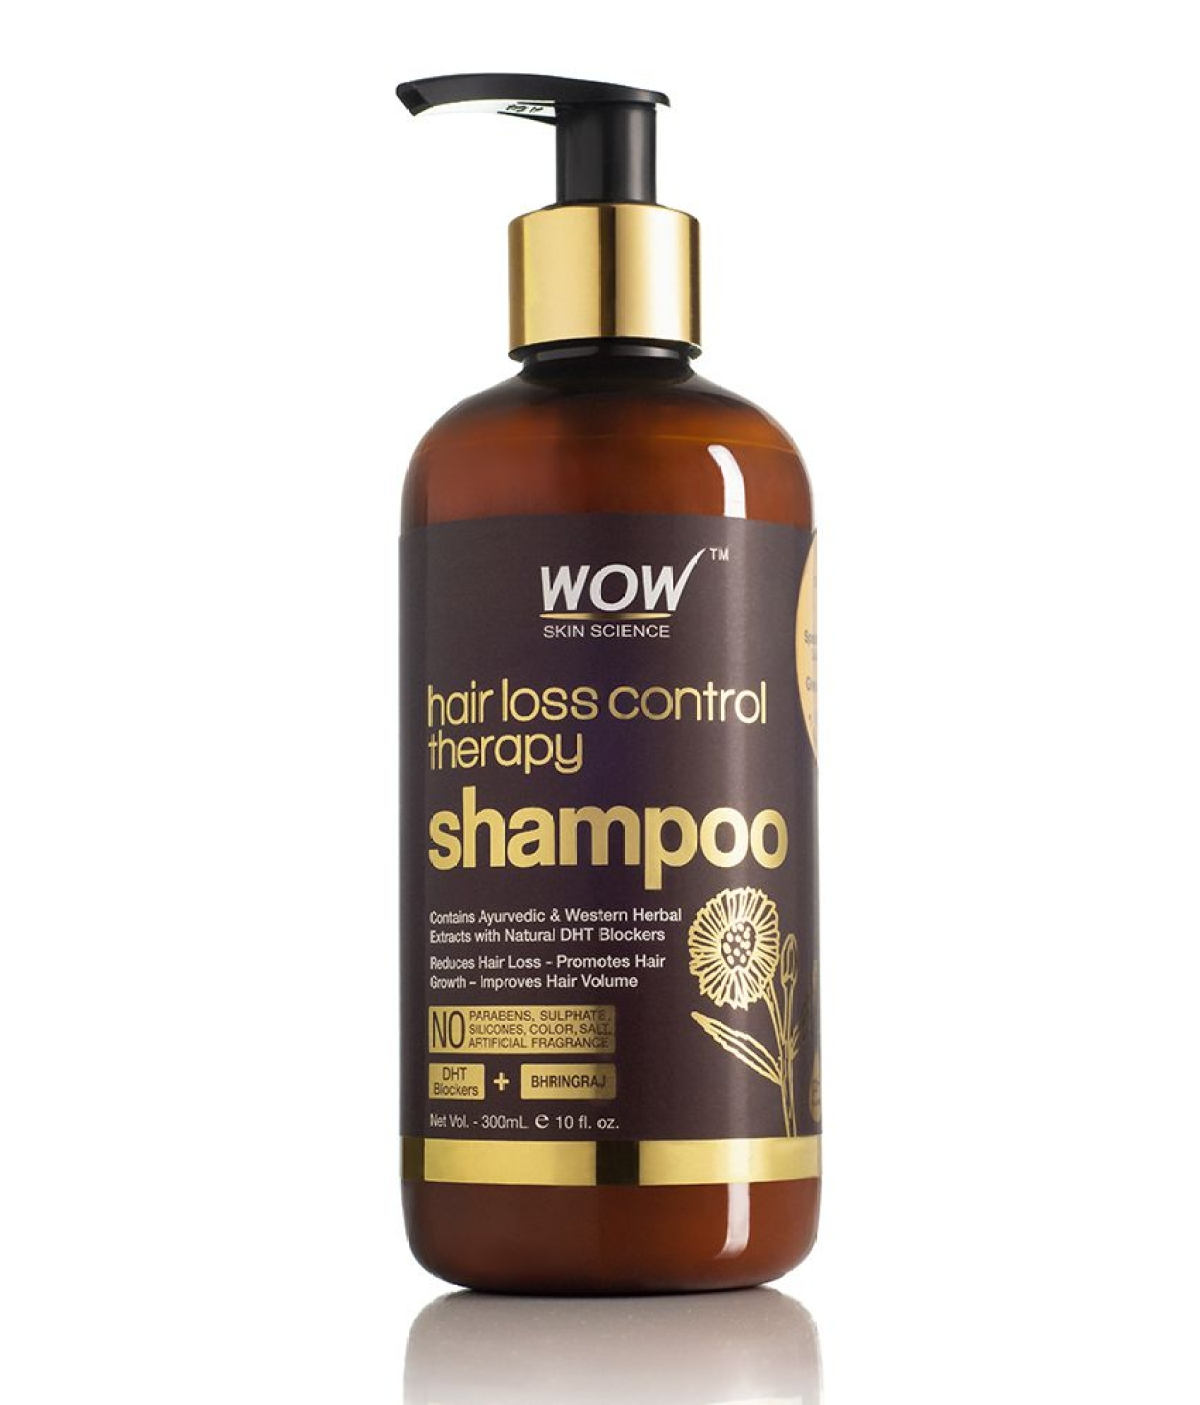 Wow's hair loss control therapy shampoo